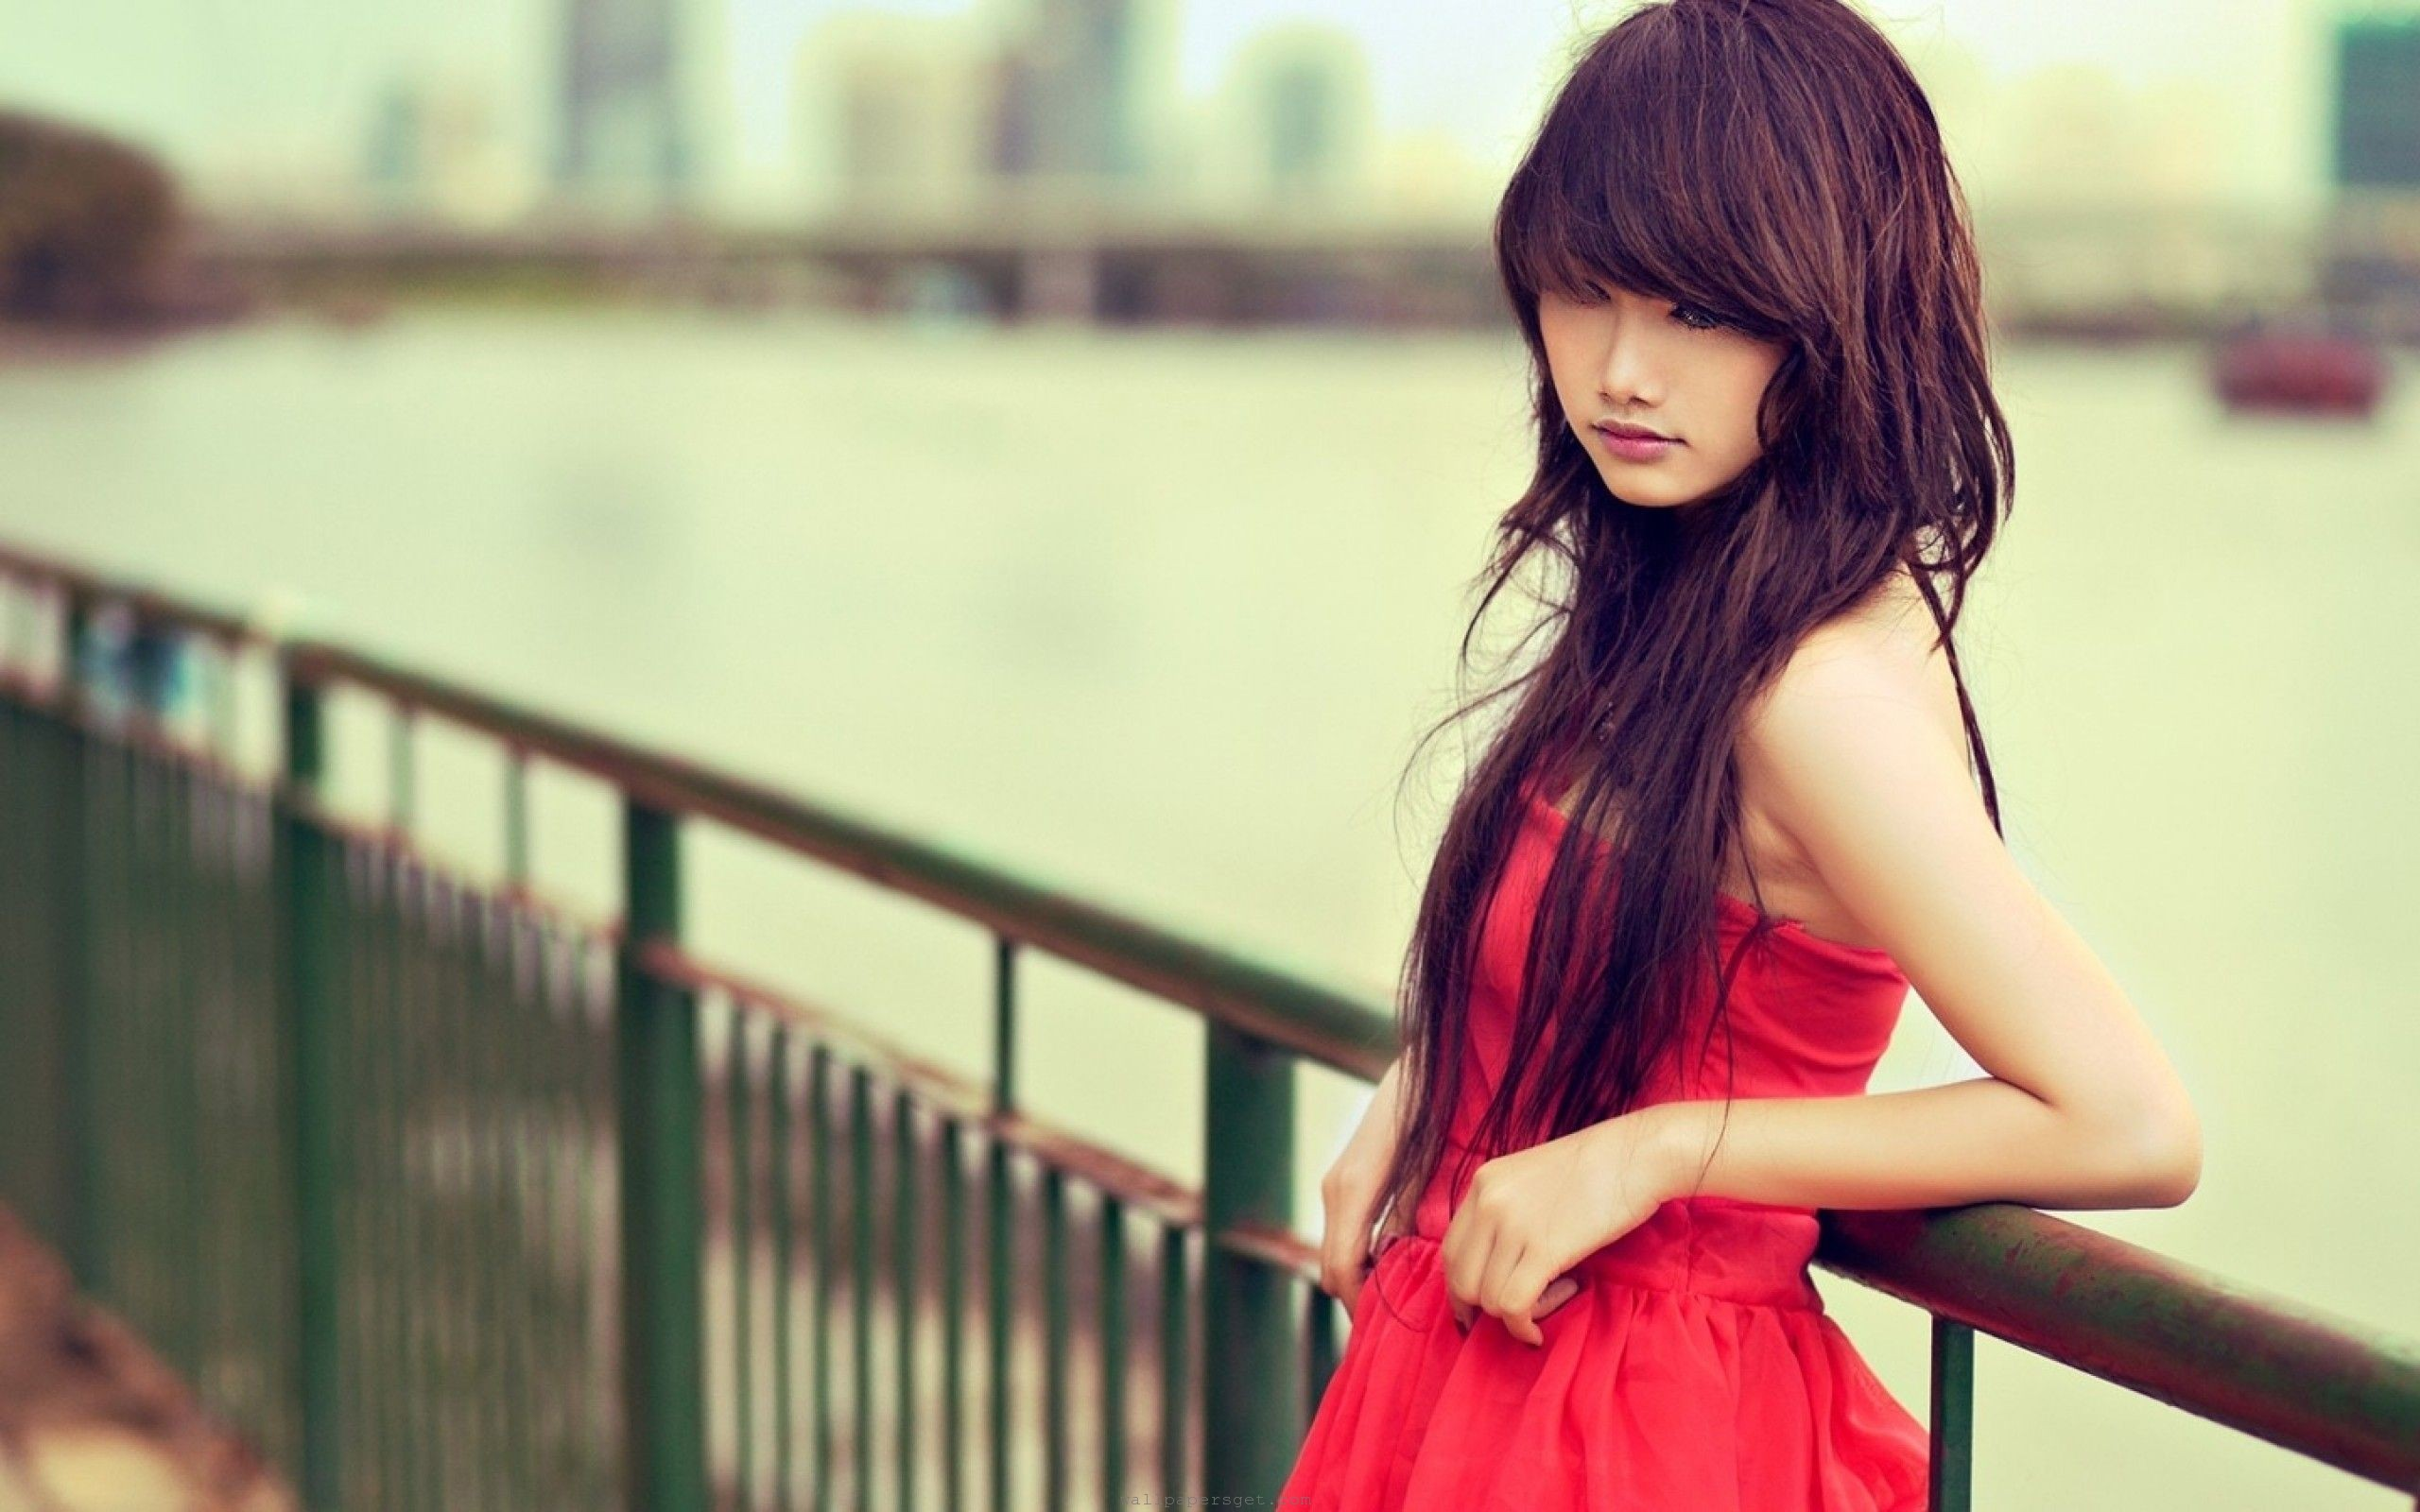 Cute teen girl wallpapers 62 images - Asian schoolgirl wallpaper ...